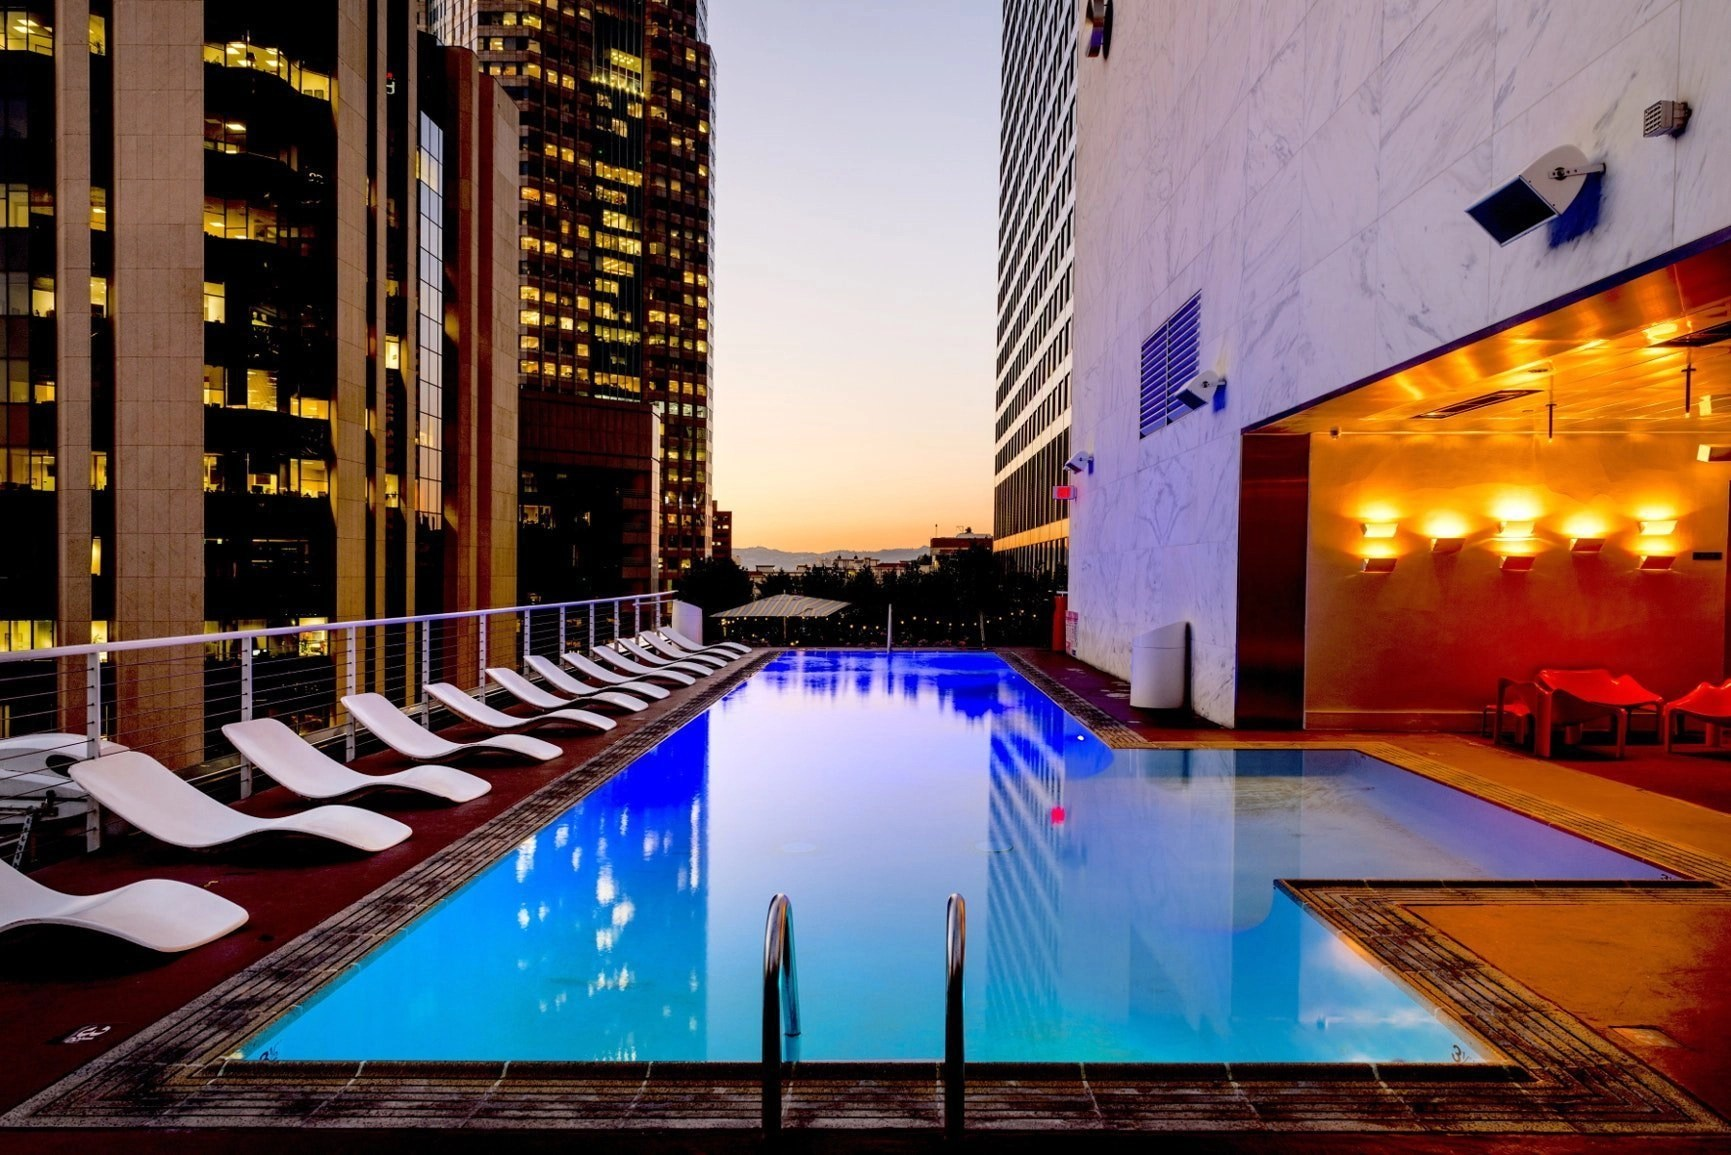 A hotel with modern architecture and view of pool for when you go traveling on your next vacation. Learn how properly packing will help you for a better, more relaxed vacation.